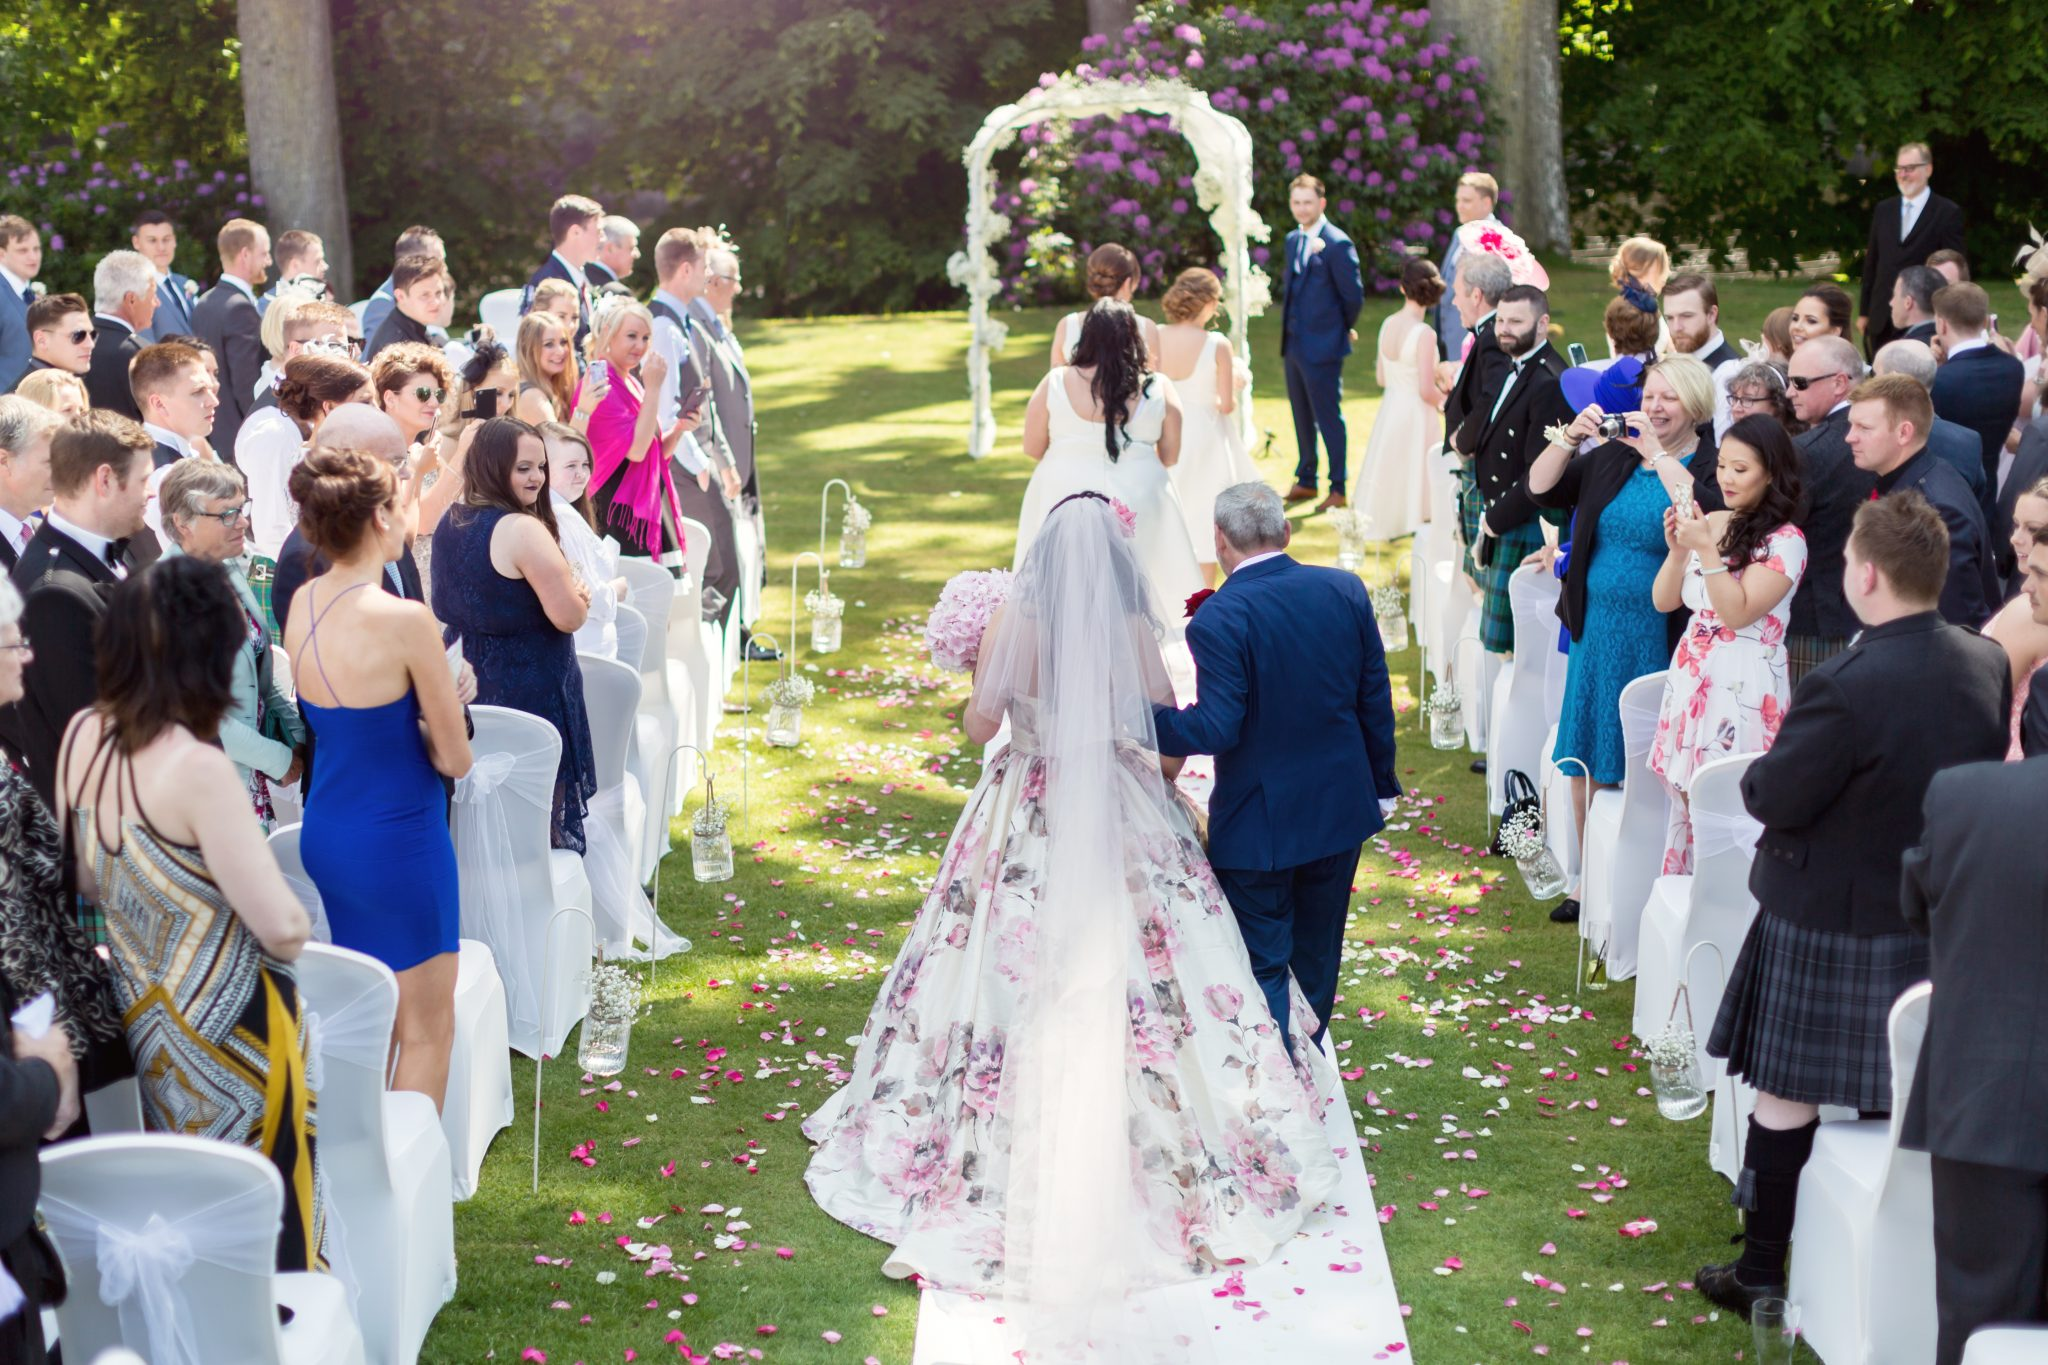 The Best Wedding Destination For You